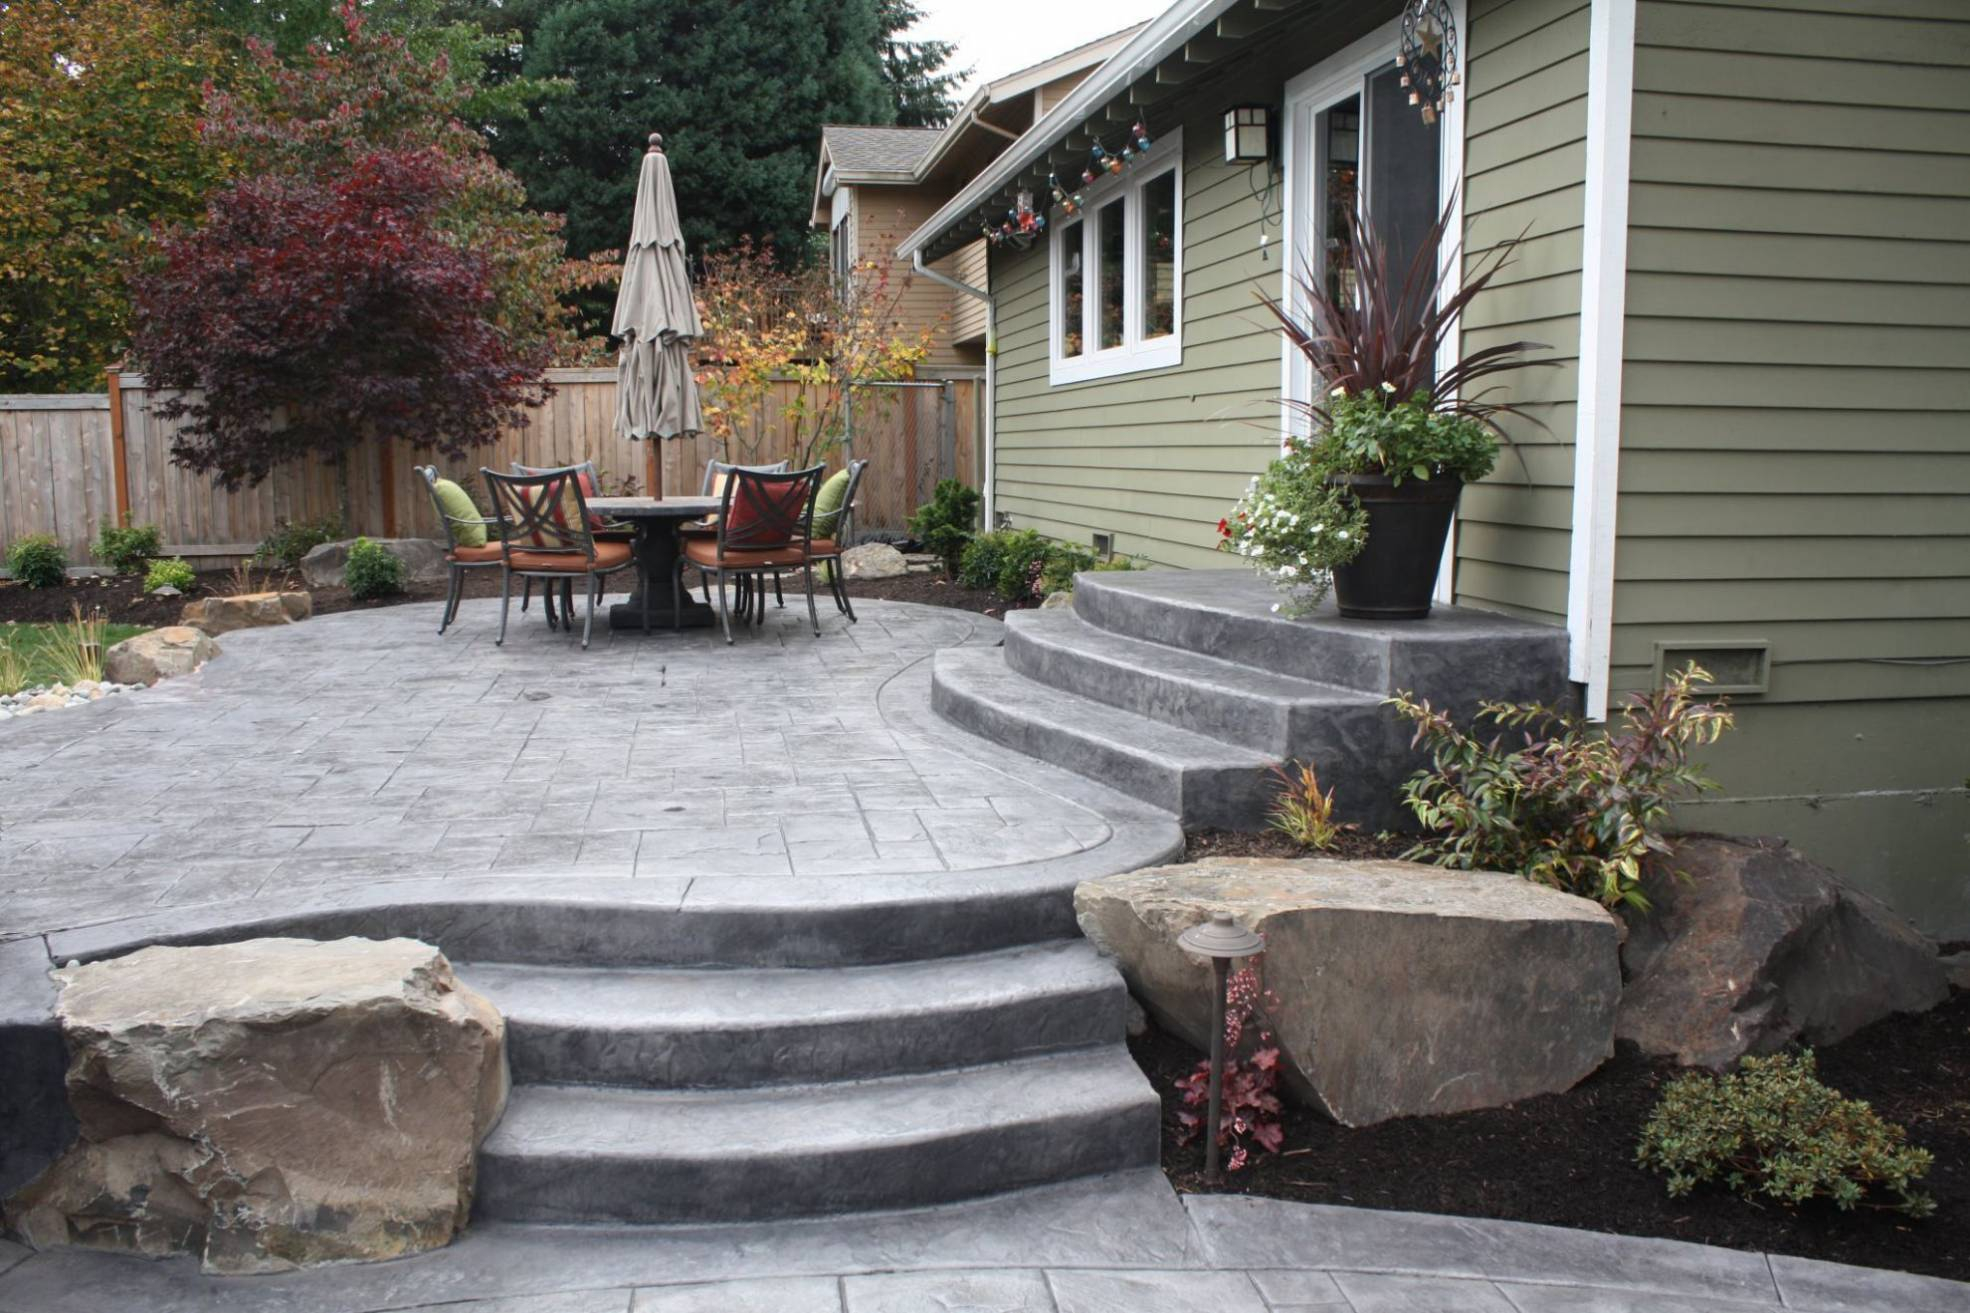 Backyard Stamped Concrete Patio Ideas Air Home Products Concrete with regard to Concrete Patio Ideas Backyard